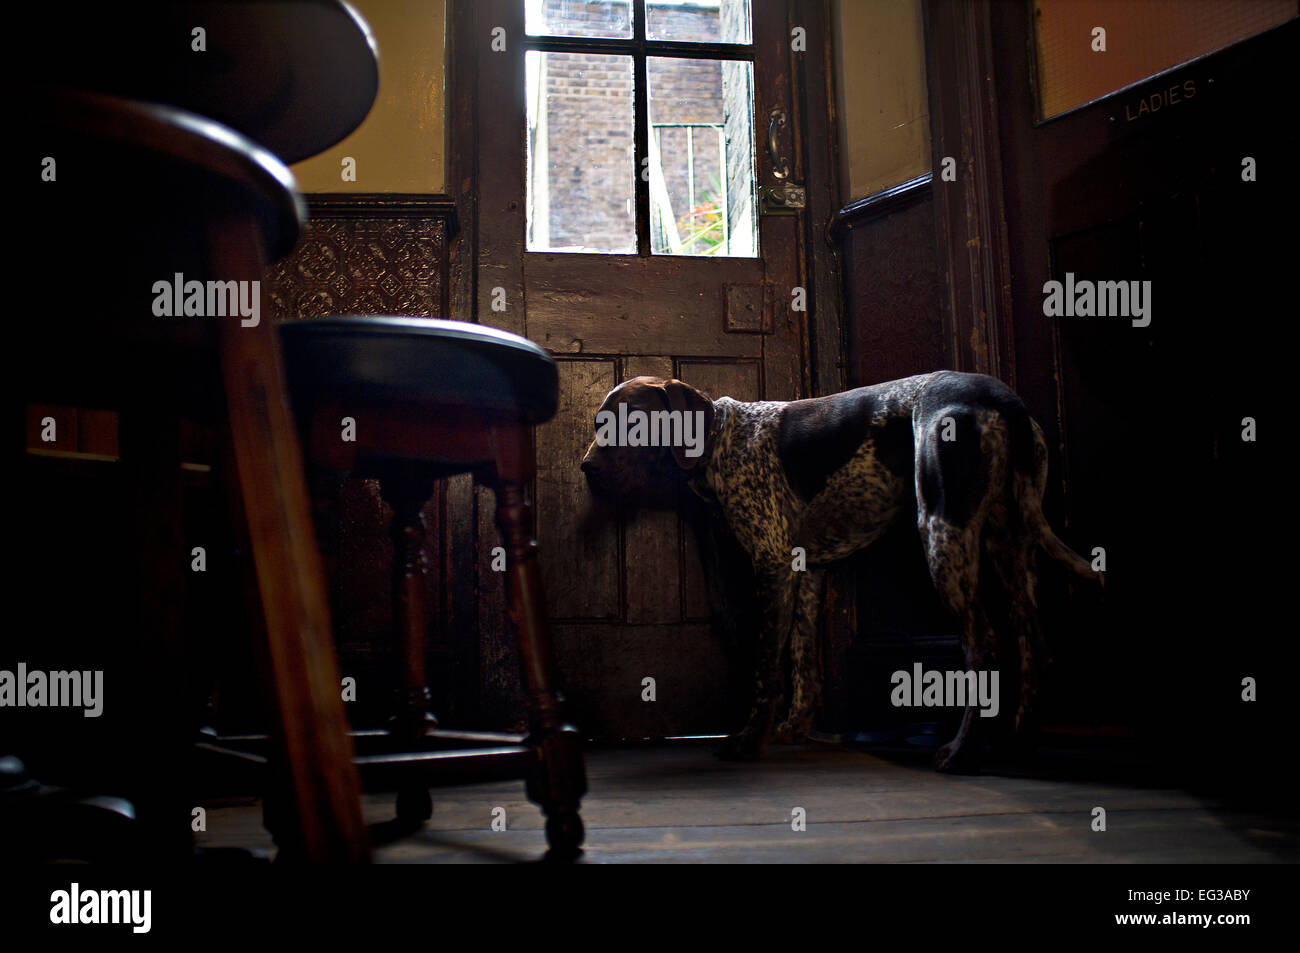 German Shorthaired Pointer dog standing at door of pub - Stock Image